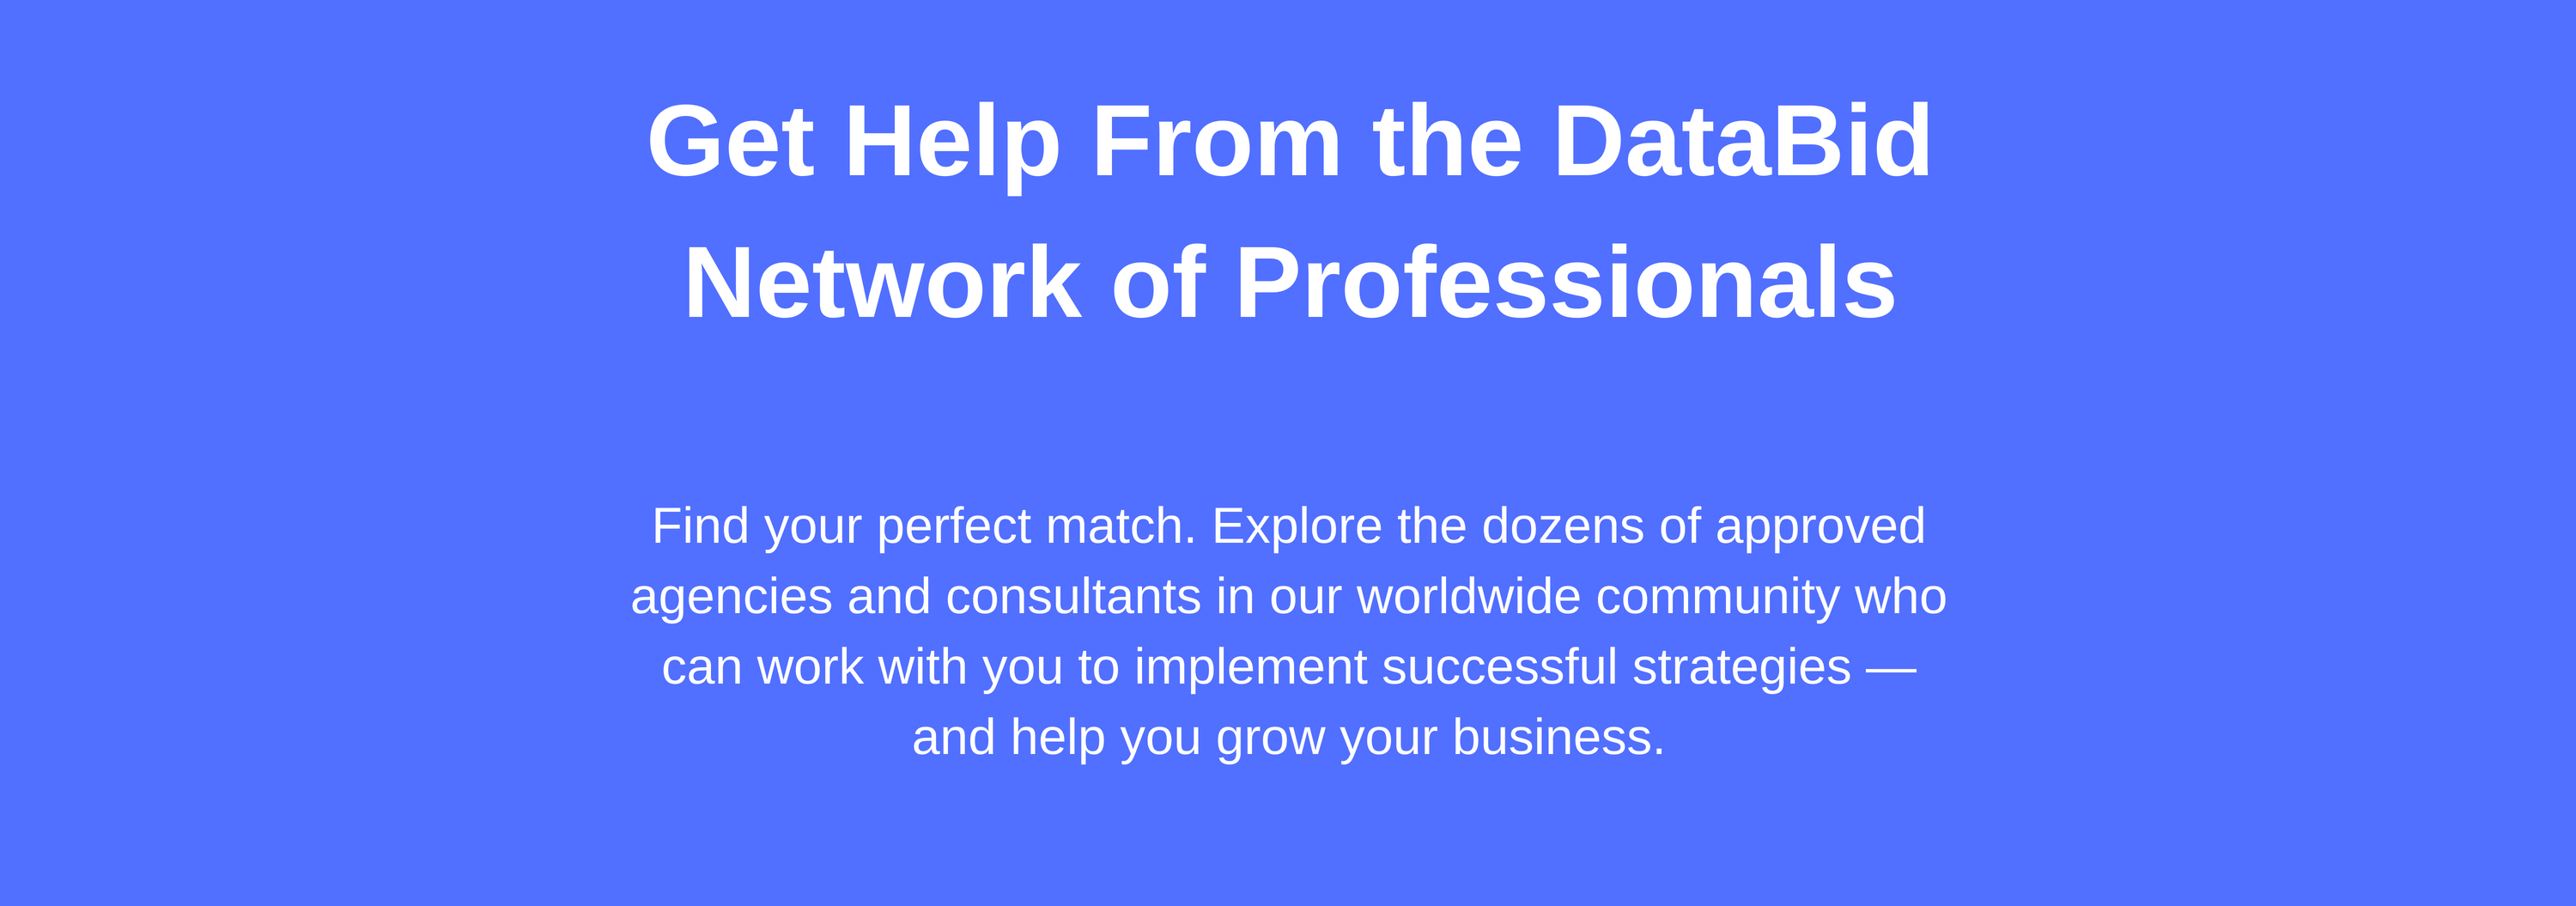 Get Help From the DataBid Network-1.png